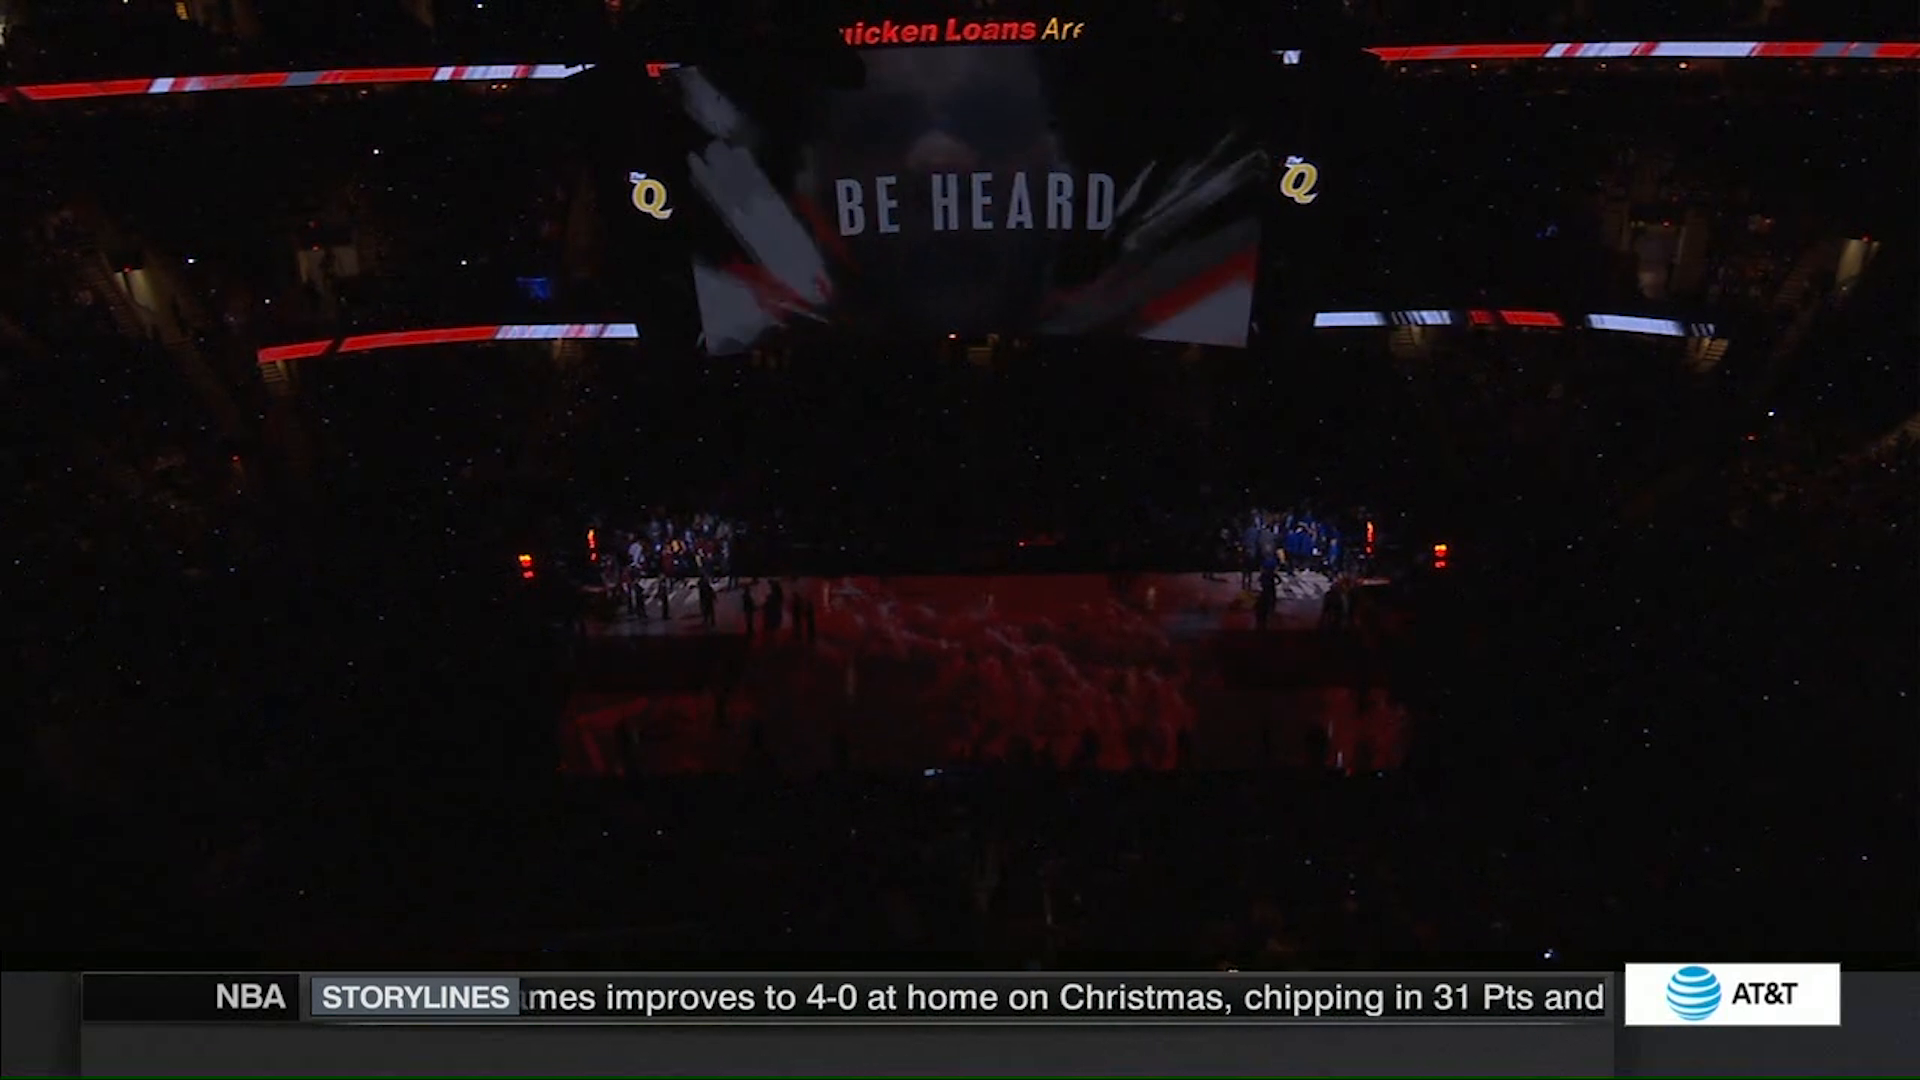 Thumbnail for Be Heard - Cleveland Cavaliers Event